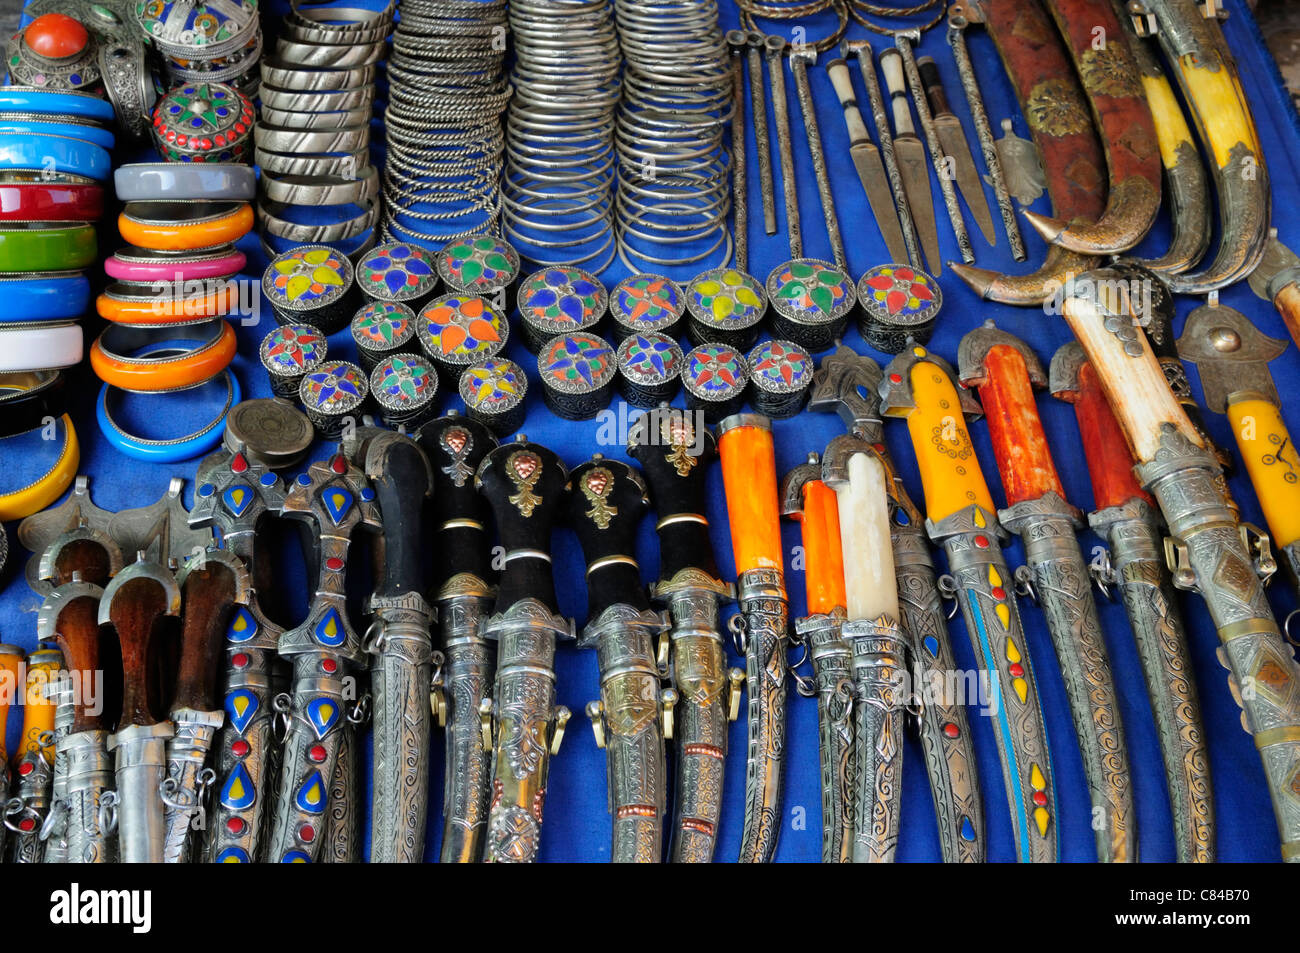 Knives and Jewellery, Marrakech, Morocco - Stock Image